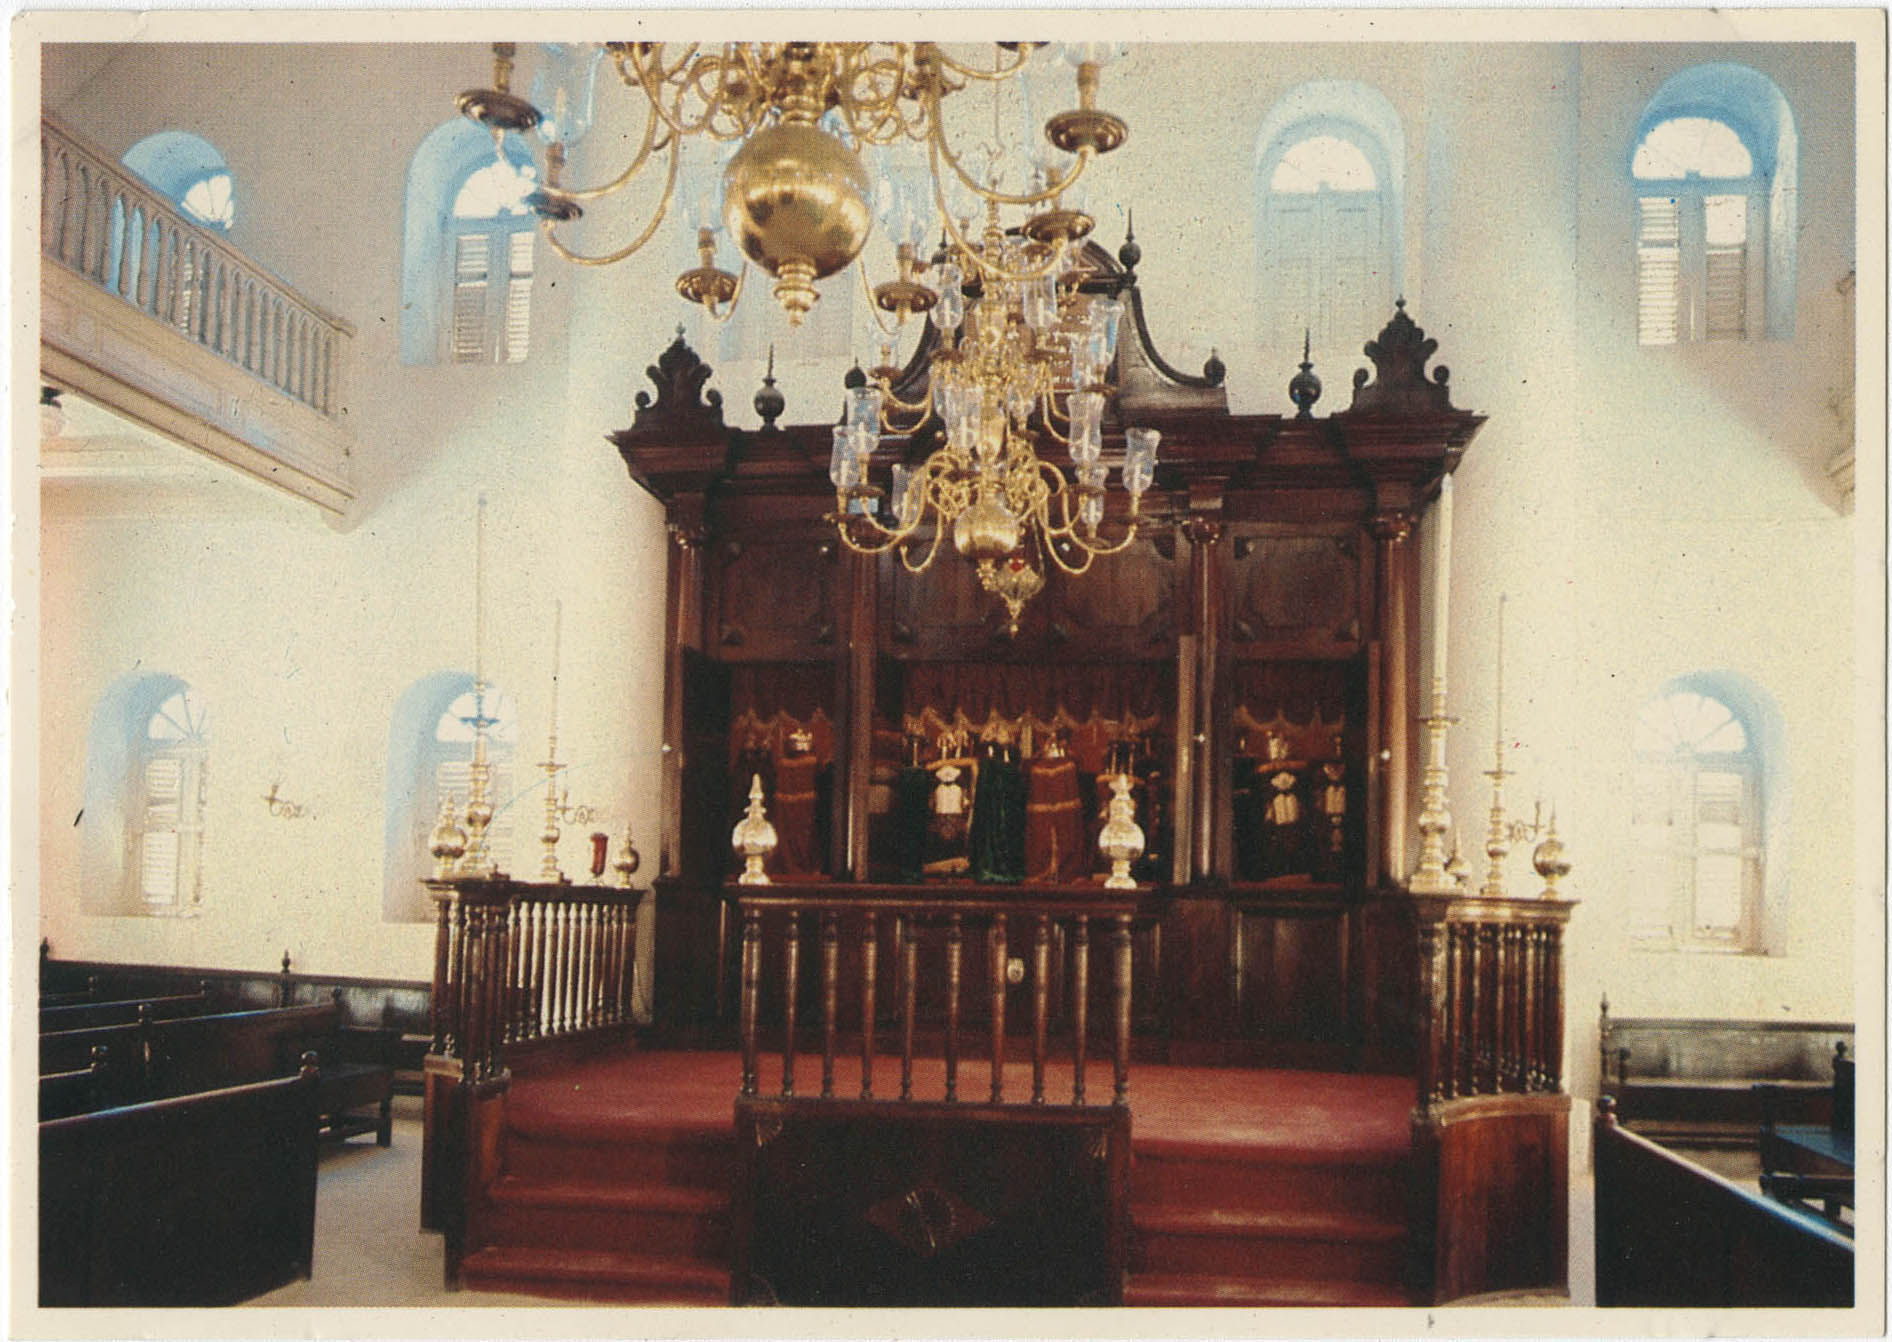 Curaçao, Netherlands Antilles. Interior of Mikve Israel-Emmanuel Synagogue, dedicated in 1732, oldest in continuous use in Western Hemisphere. View shows mahogany Hekhal (older than the building itself) containing 18 scrolls and beautiful old brass chandeliers over sand covered floor.